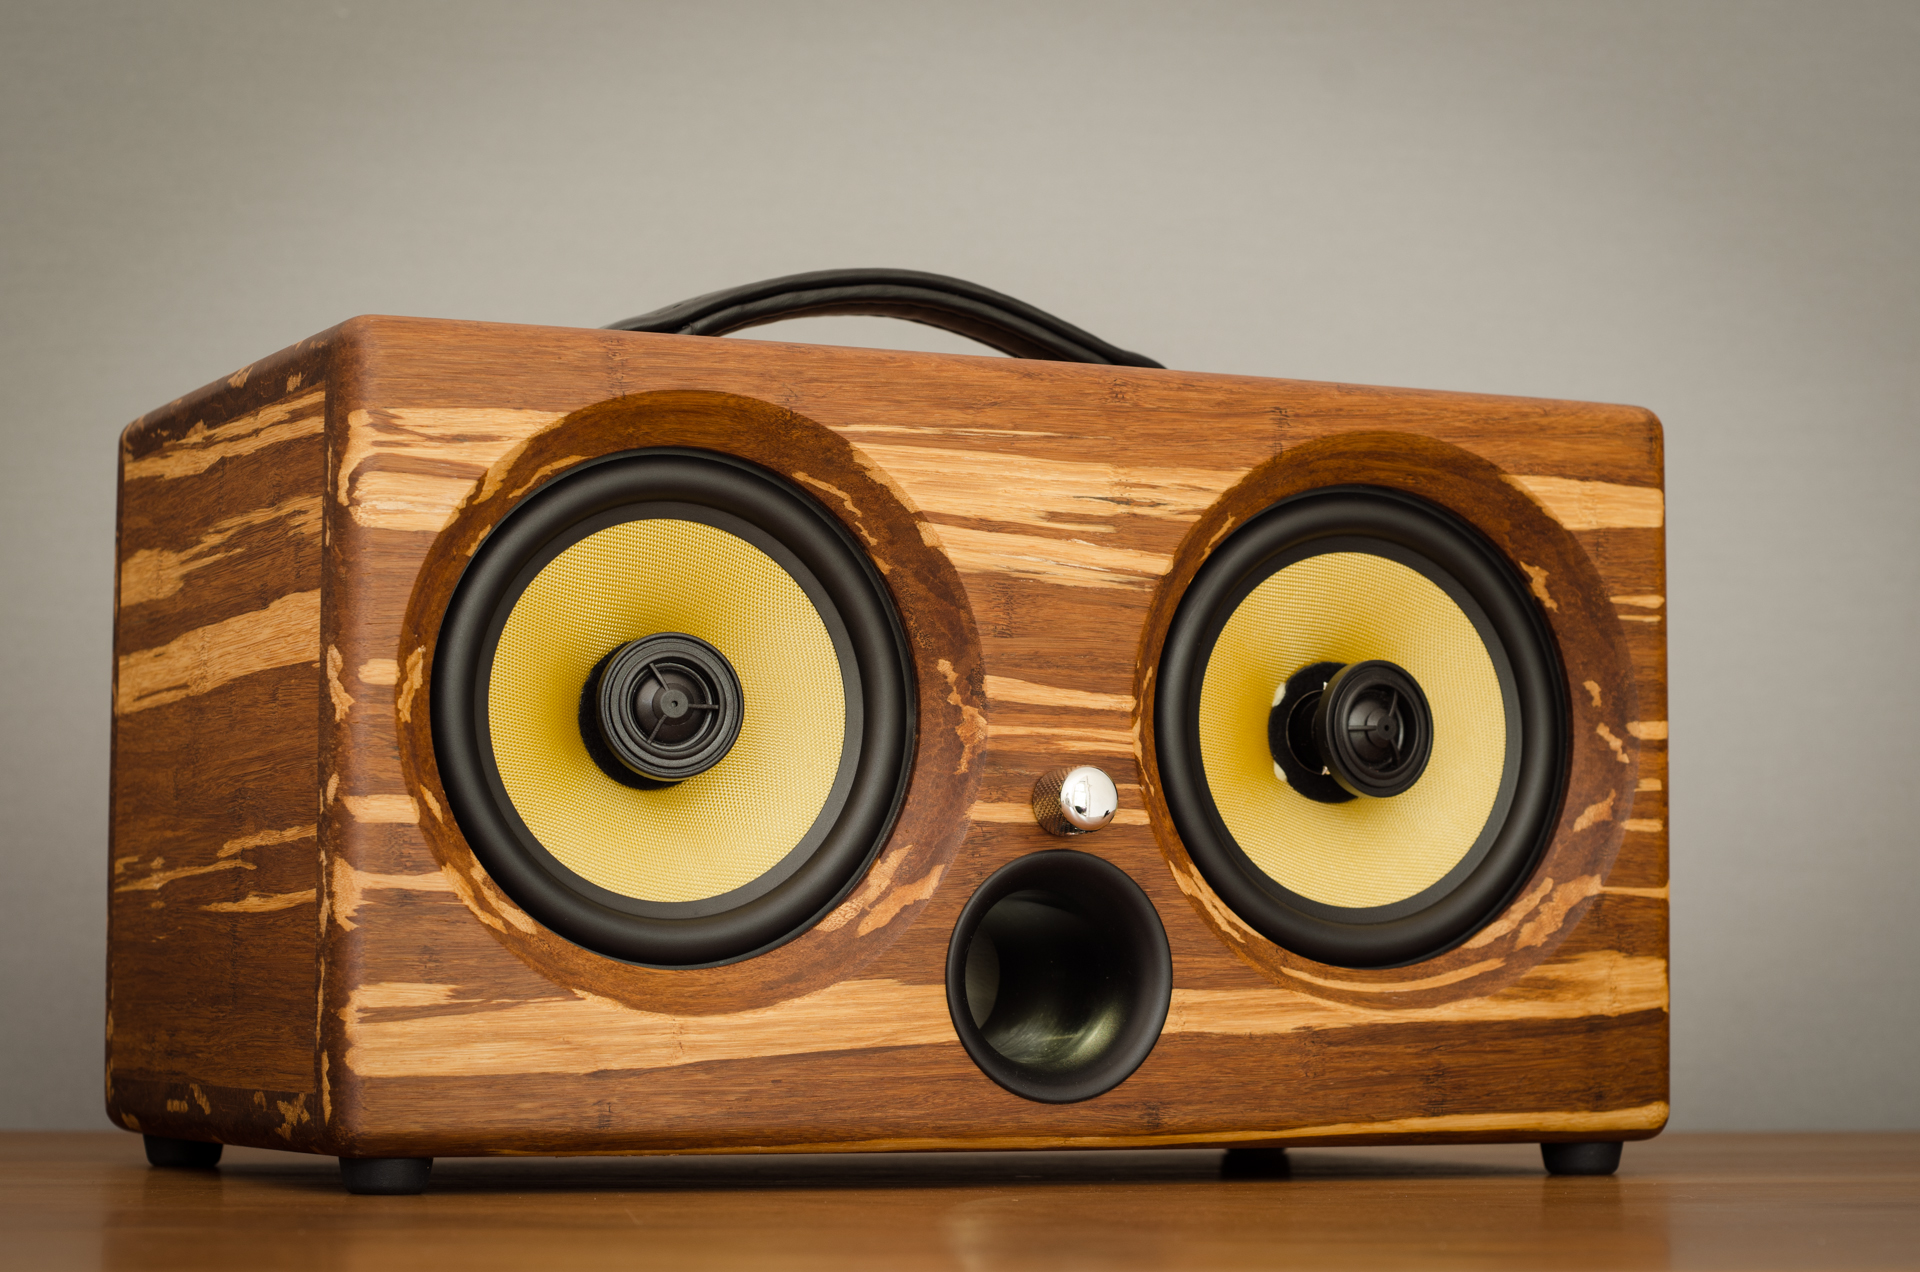 What Wood Is Used For Building Speaker Boxes